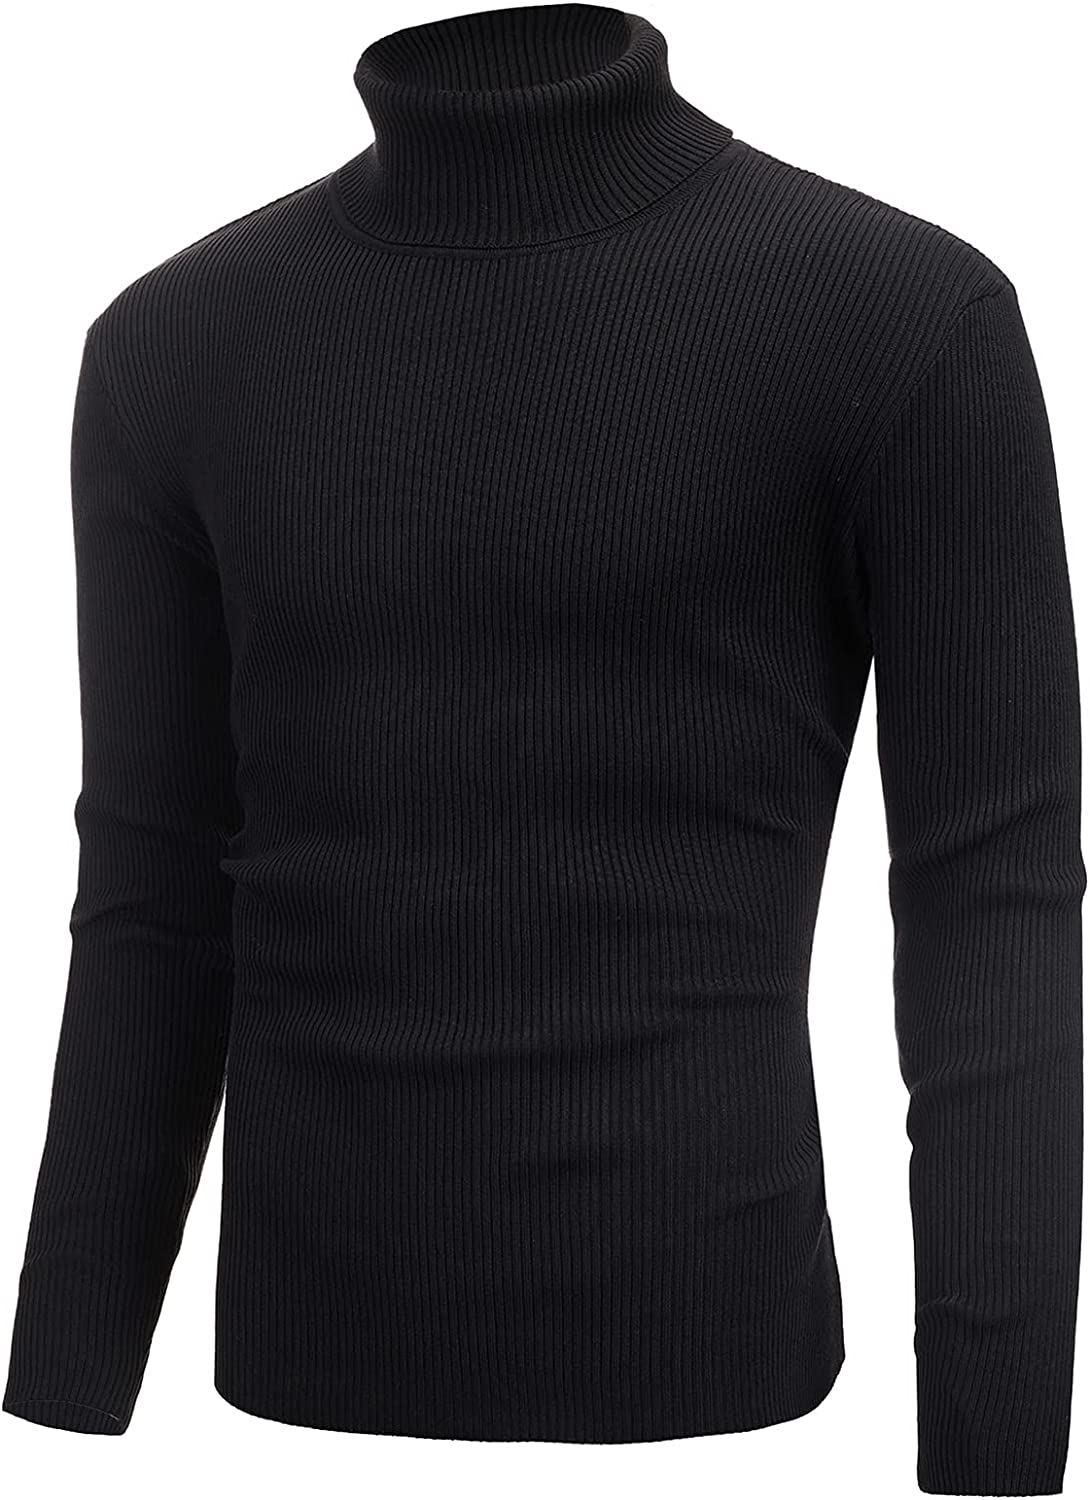 lisenraIn Turtleneck Sweater for Men Long Sleeve Pullover Fashion Slim Fit Knitted Jumper Ribbed Knitwear Sweaters